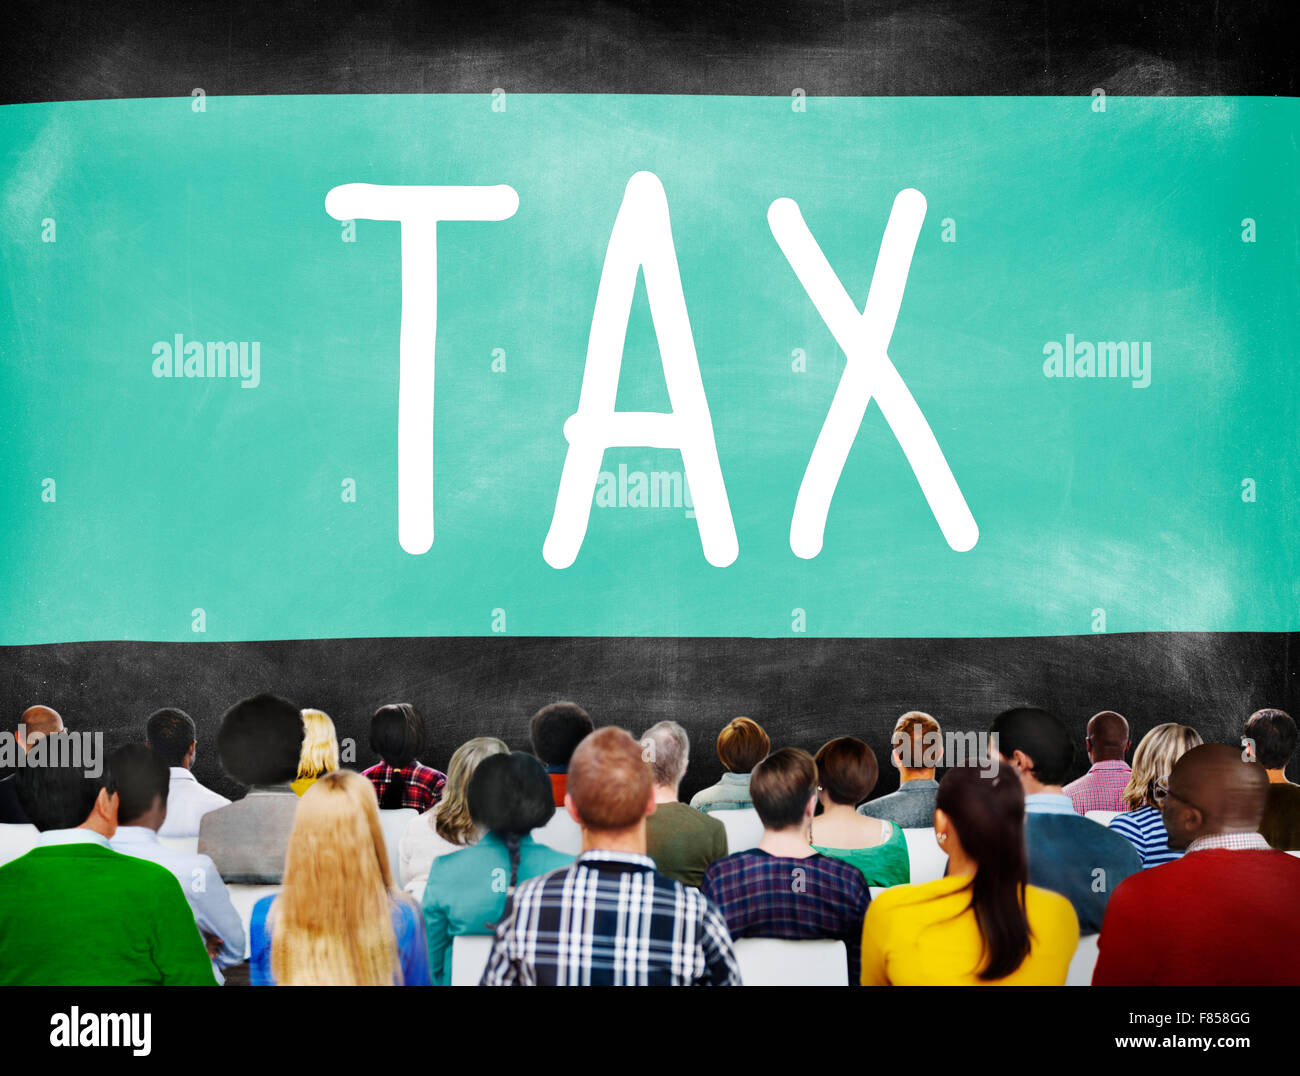 Tax Taxation Audit Refund Accounting Concept - Stock Image